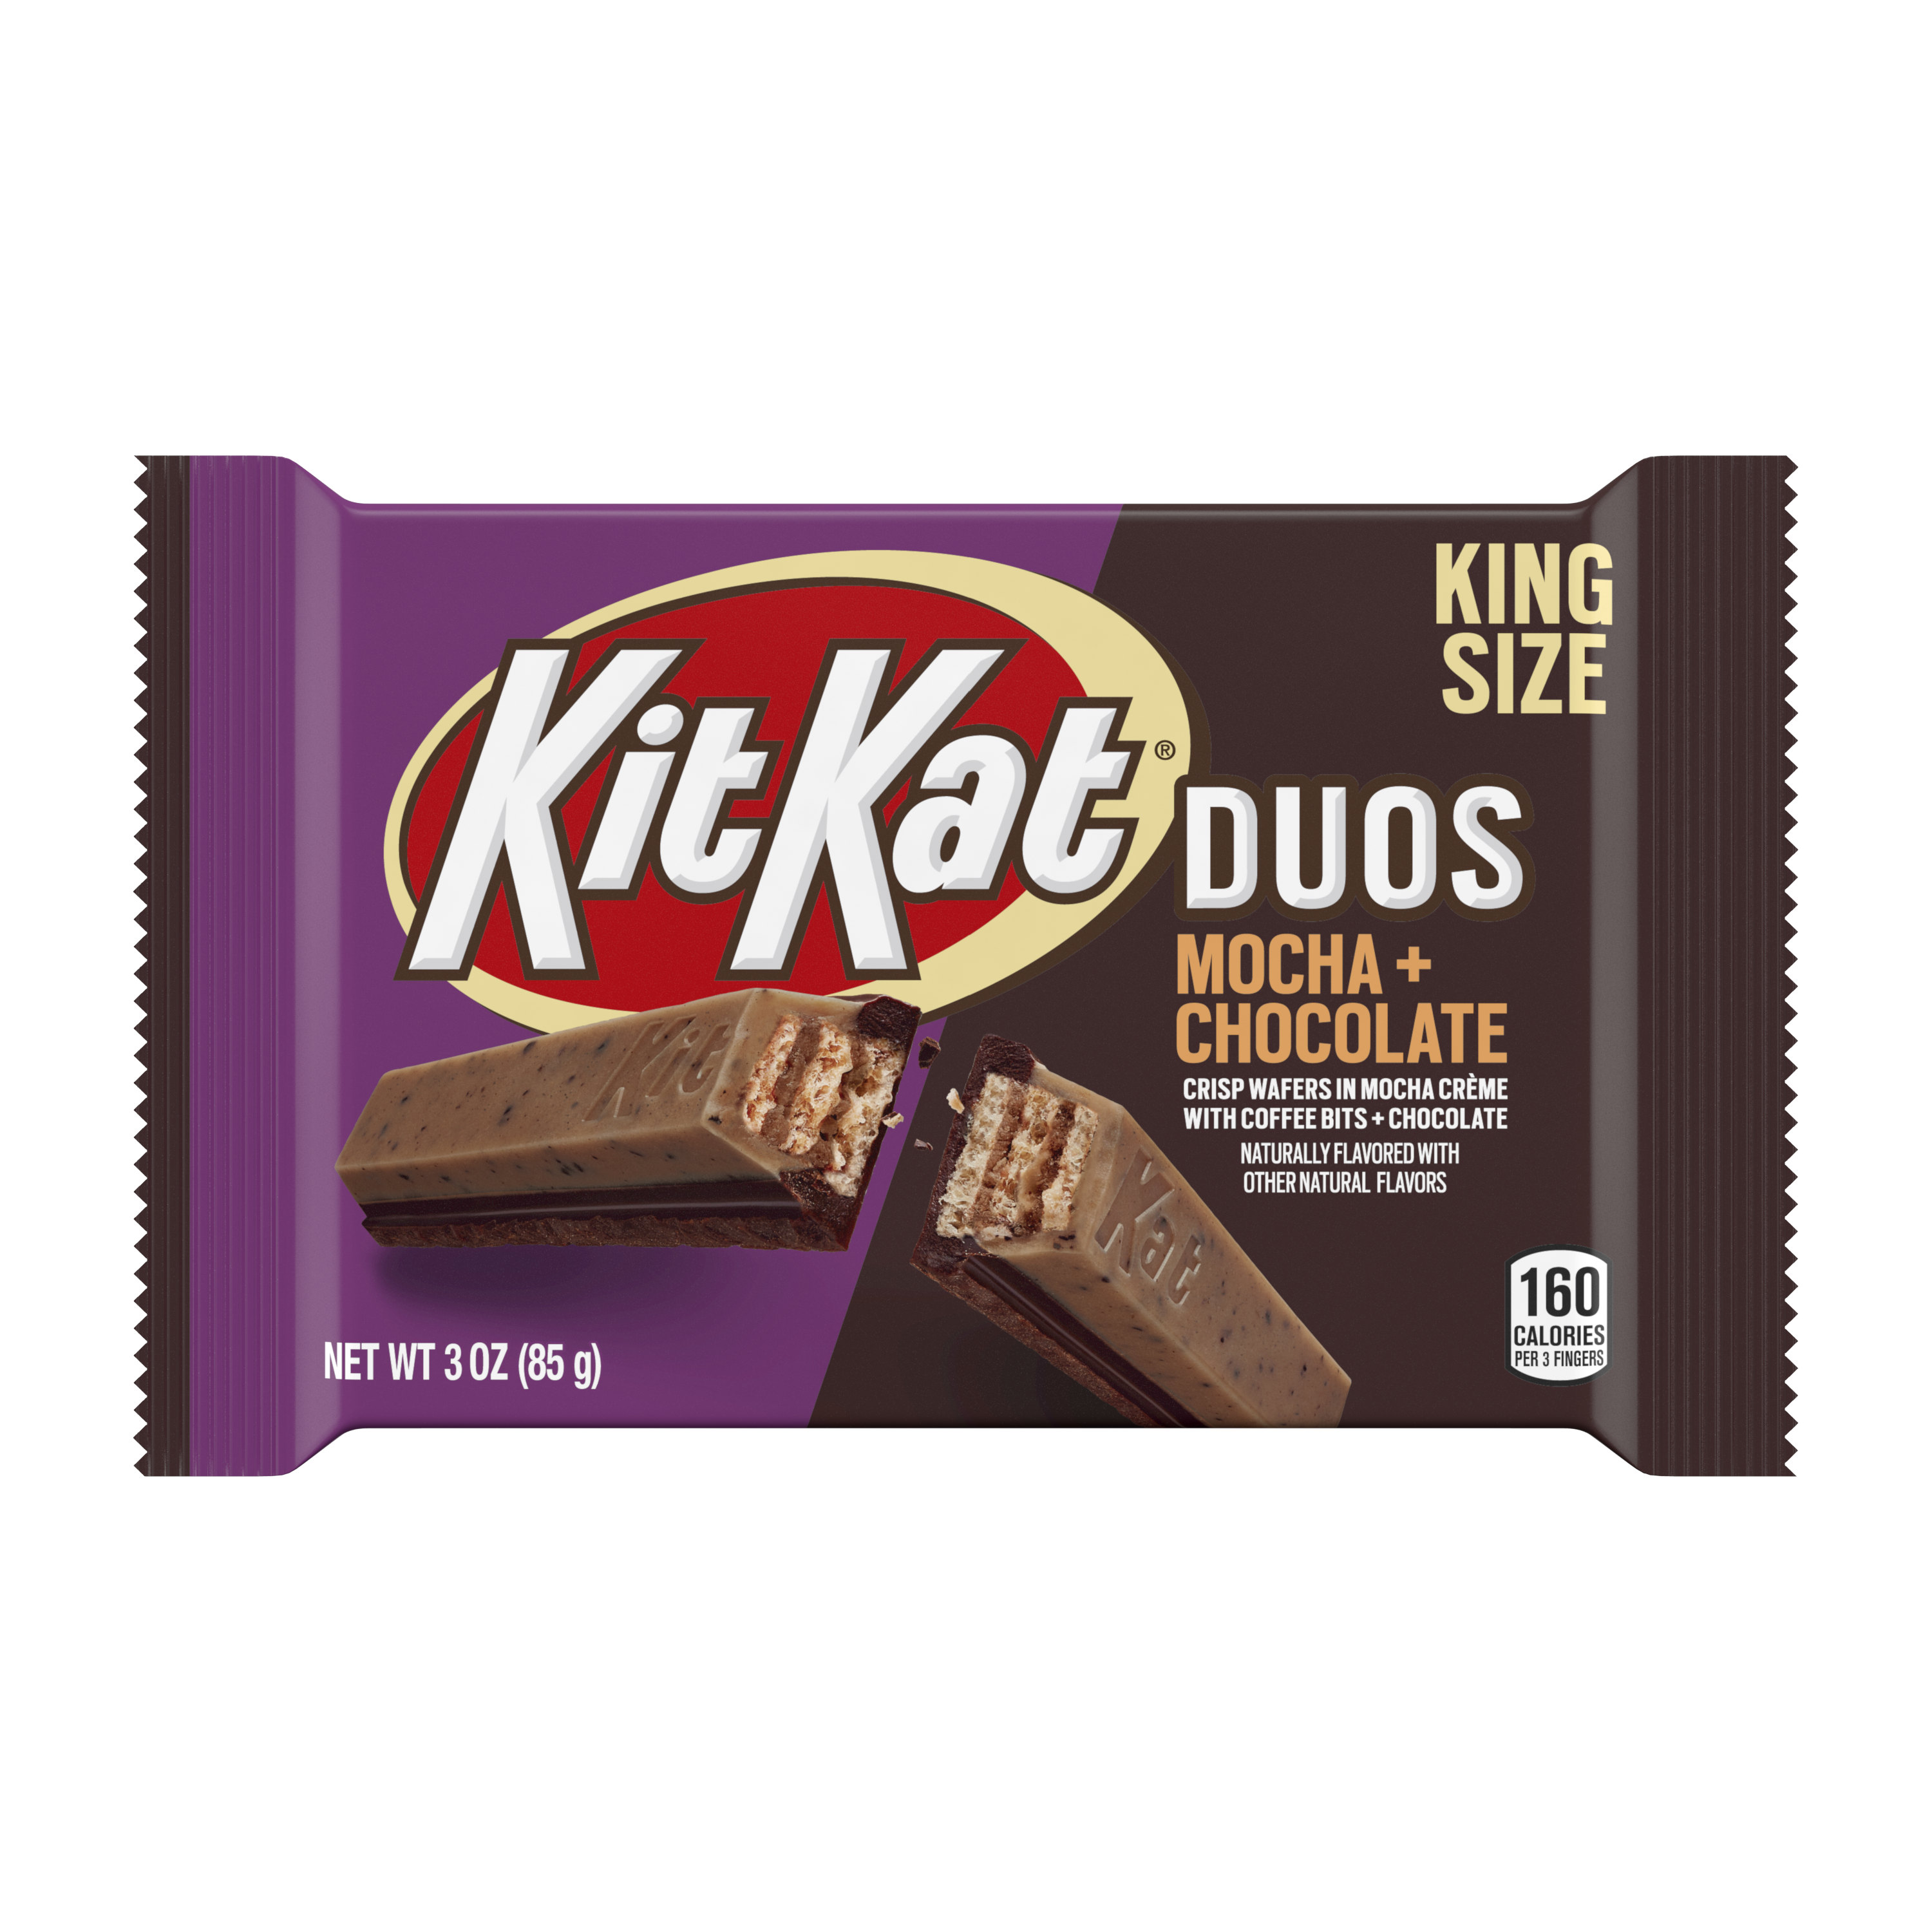 KIT KAT® DUOS Mocha and Chocolate King Size Candy Bar, 3 oz - Front of Package